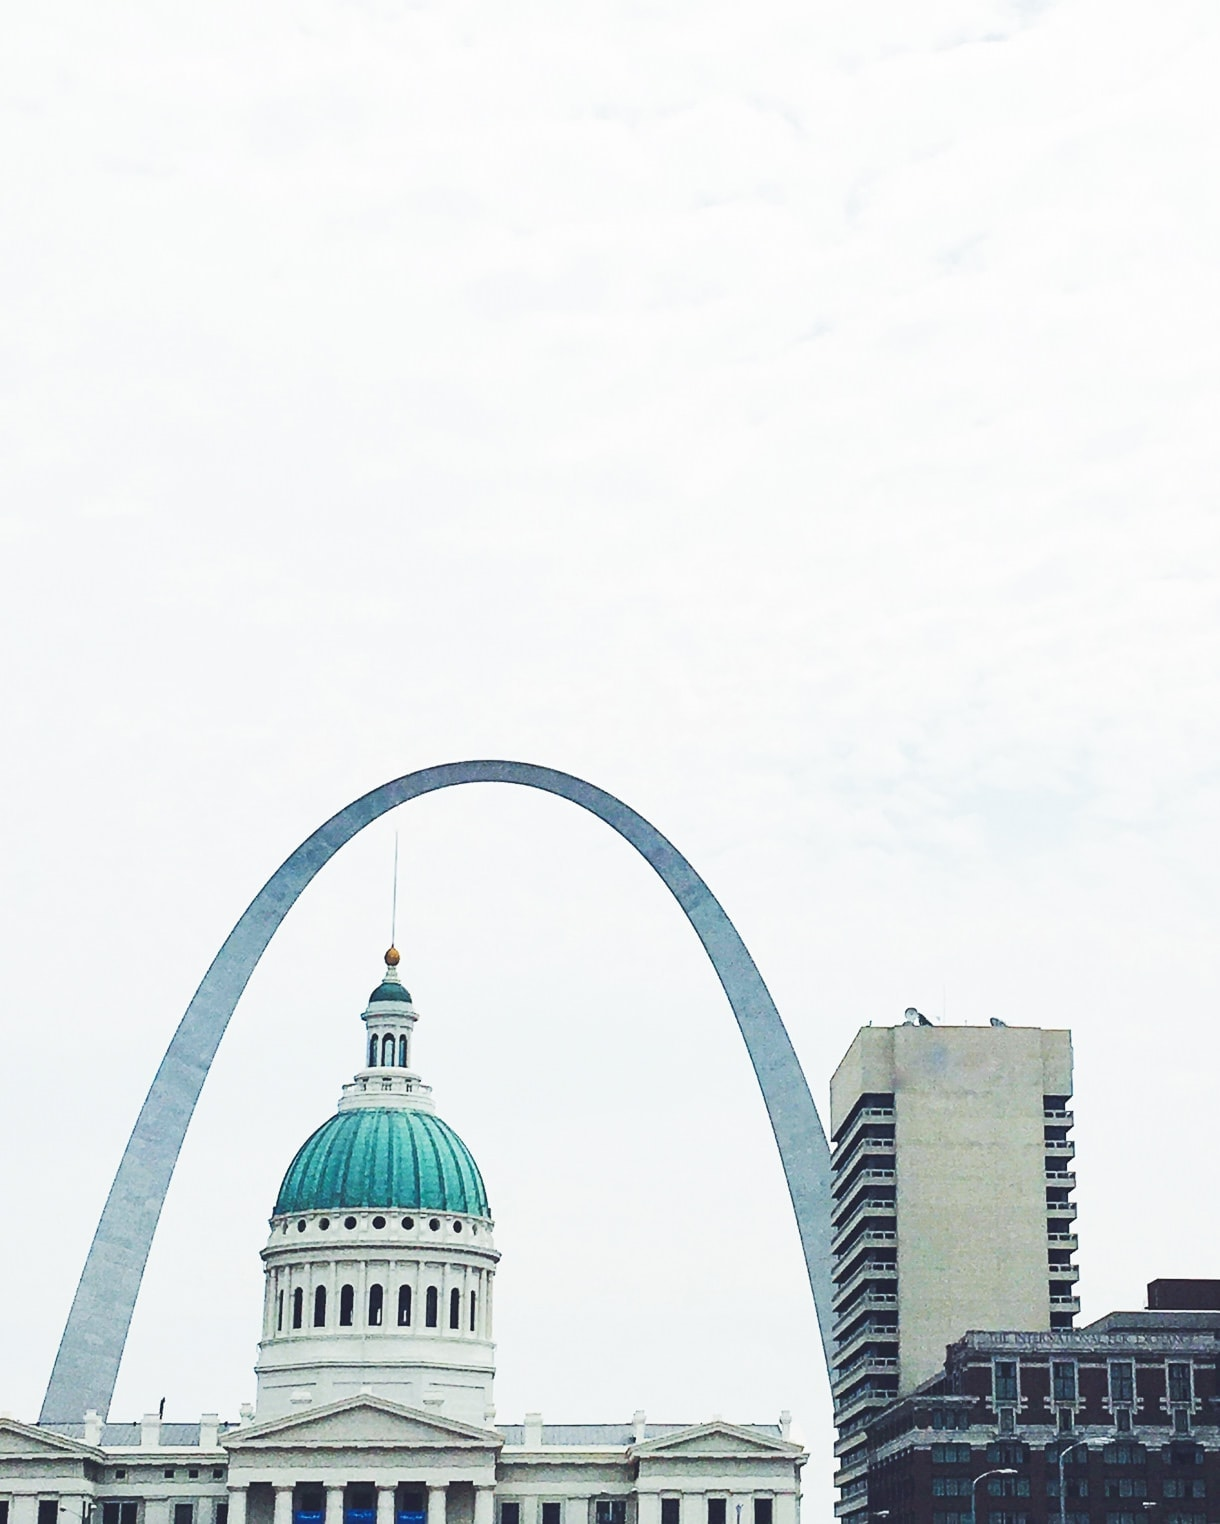 saint louis arch skyline